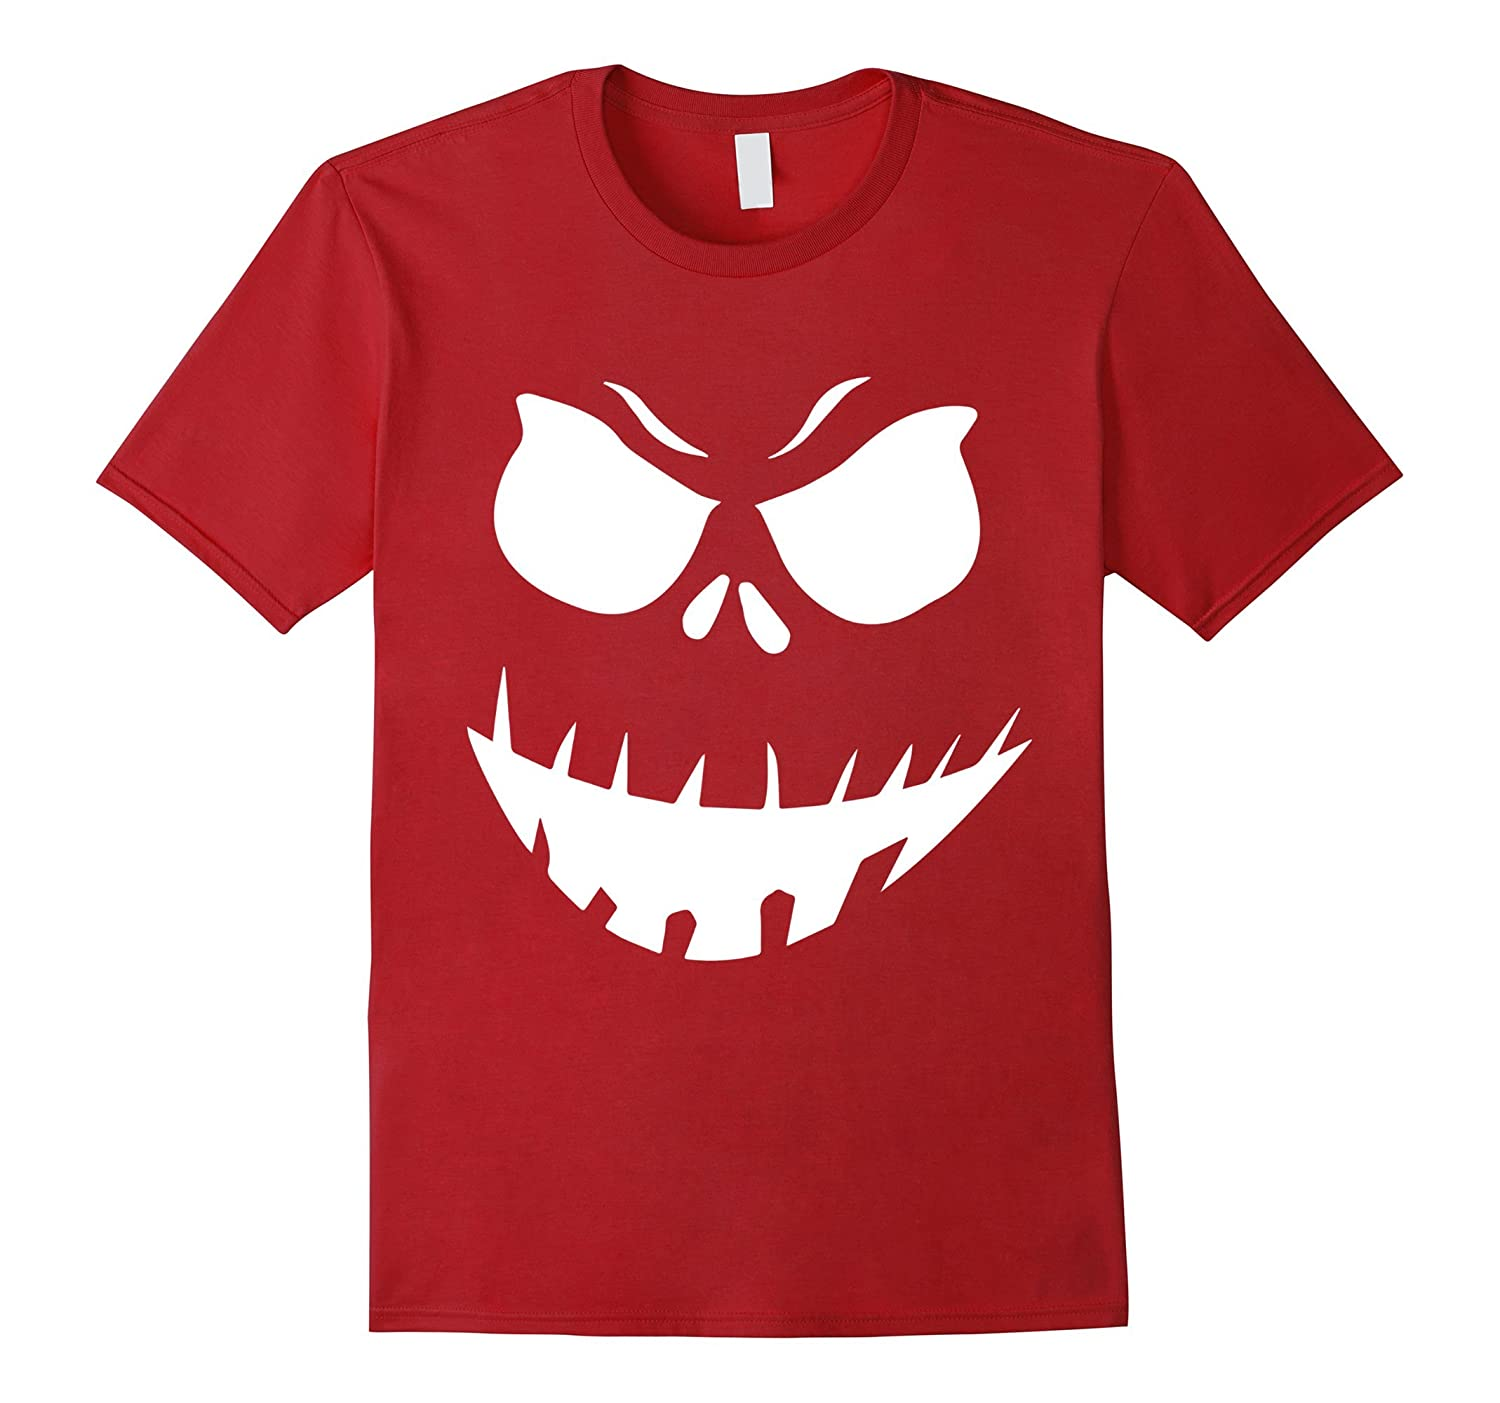 The Official Scary Face Halloween Costume Tee Shirt-RT